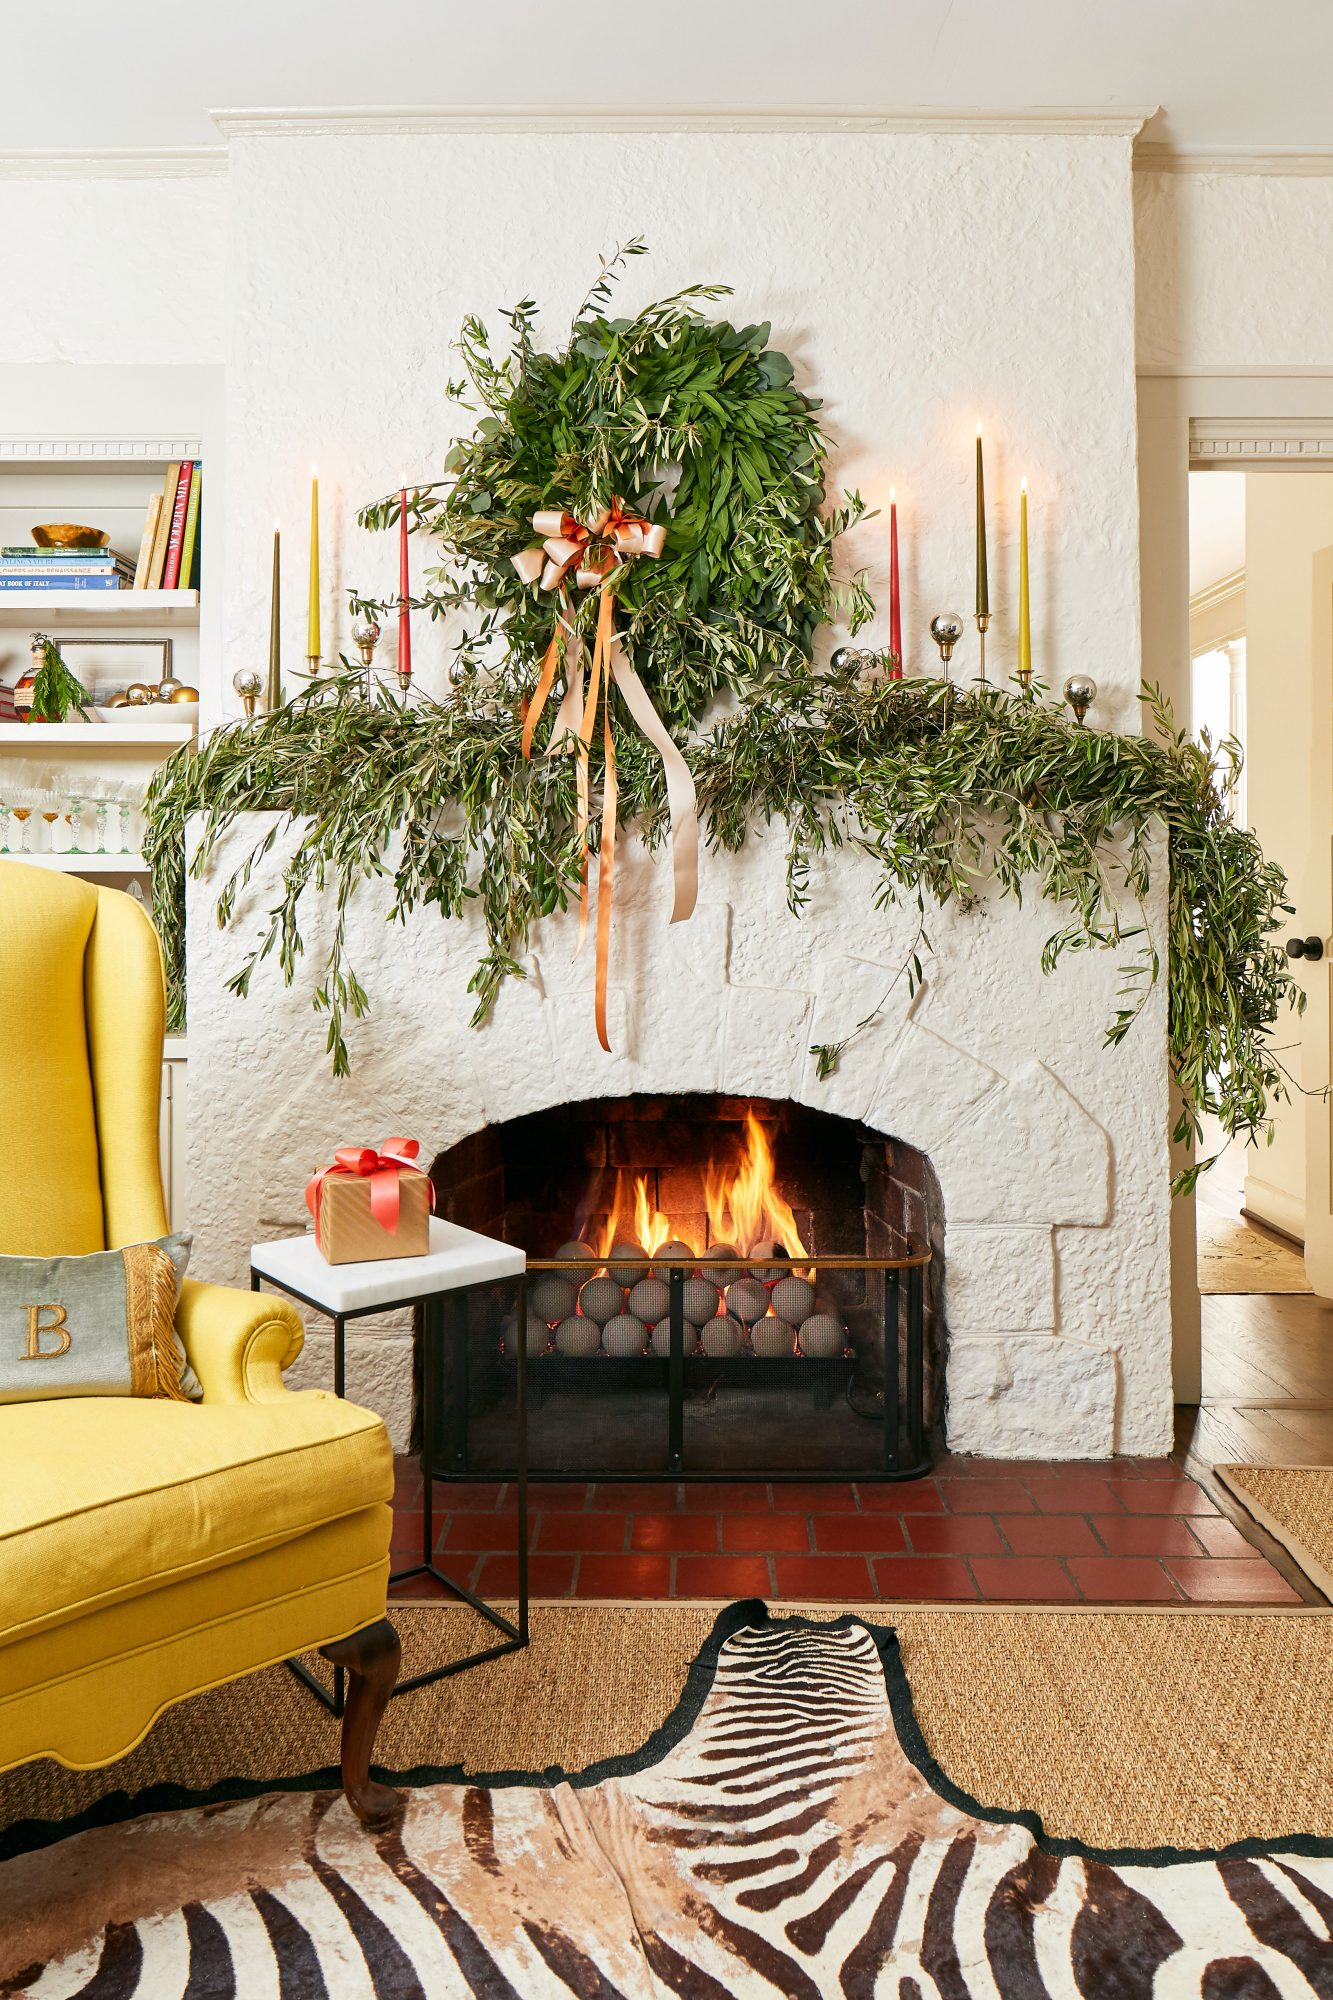 Mantel with Olive Branch, Bay Leaves, and Eucalyptus